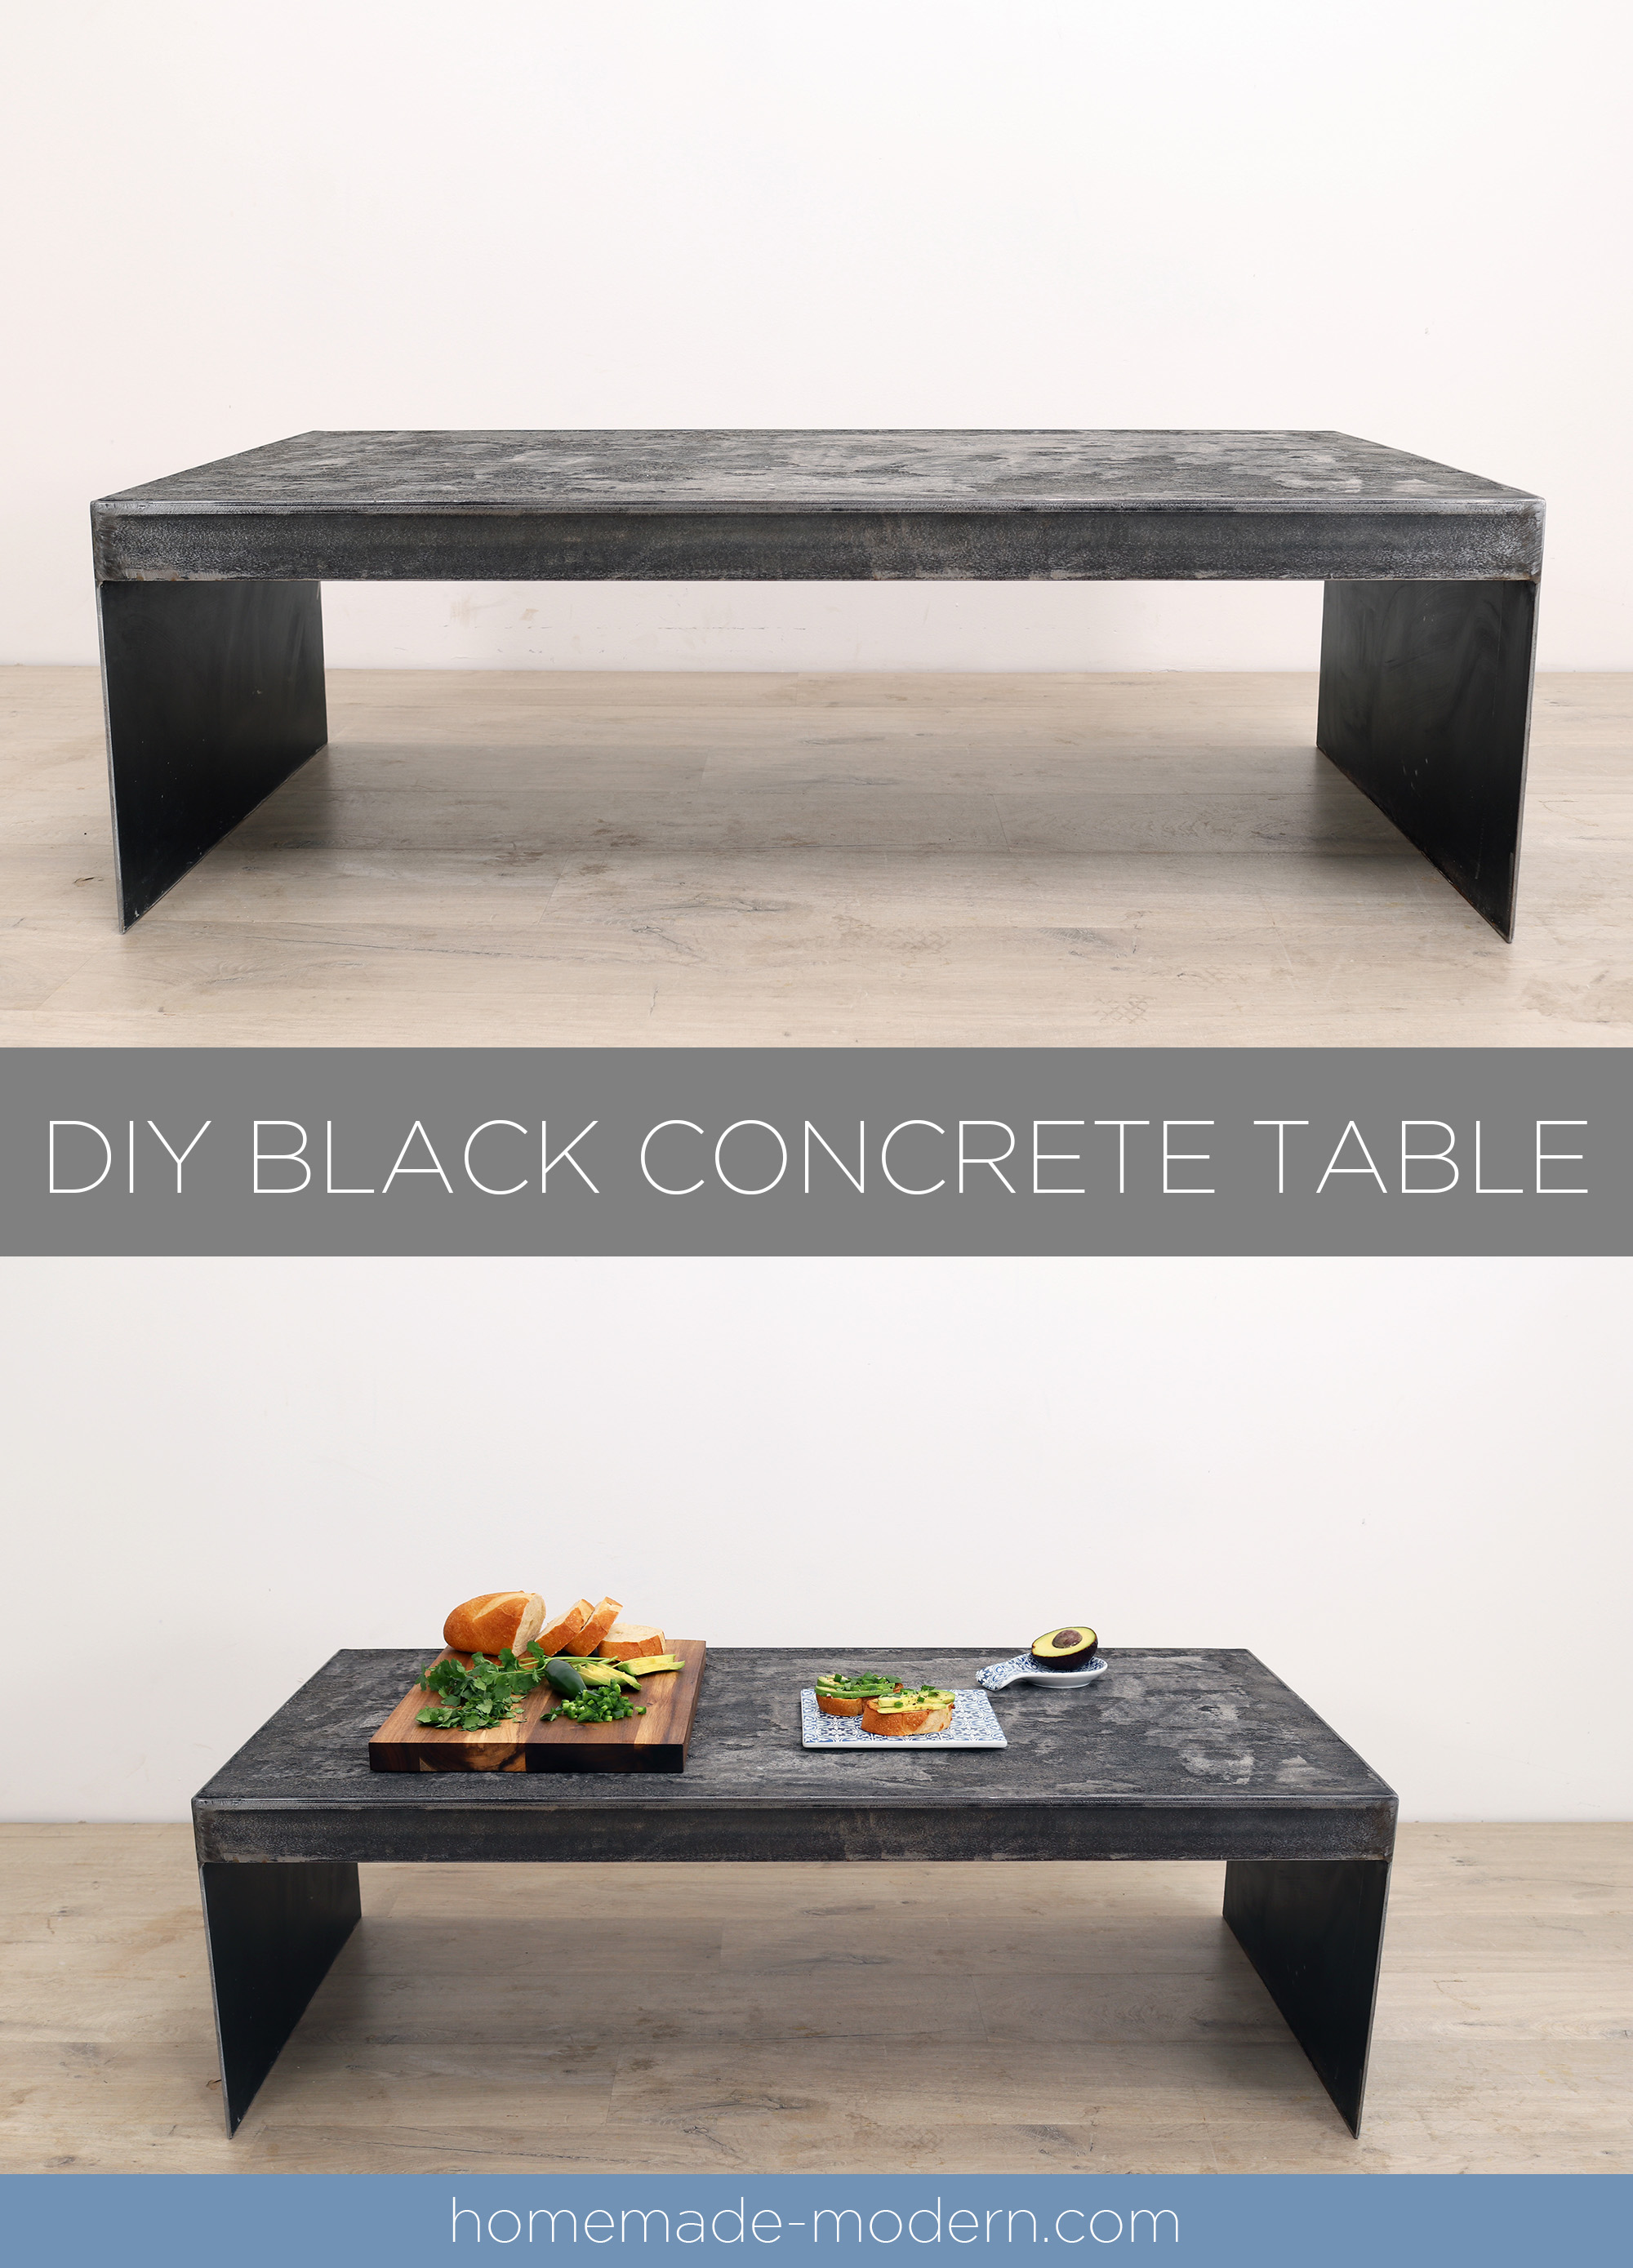 http://www.homemade-modern.com/wp-content/uploads/2019/03/blackconcretetable-banner.jpg